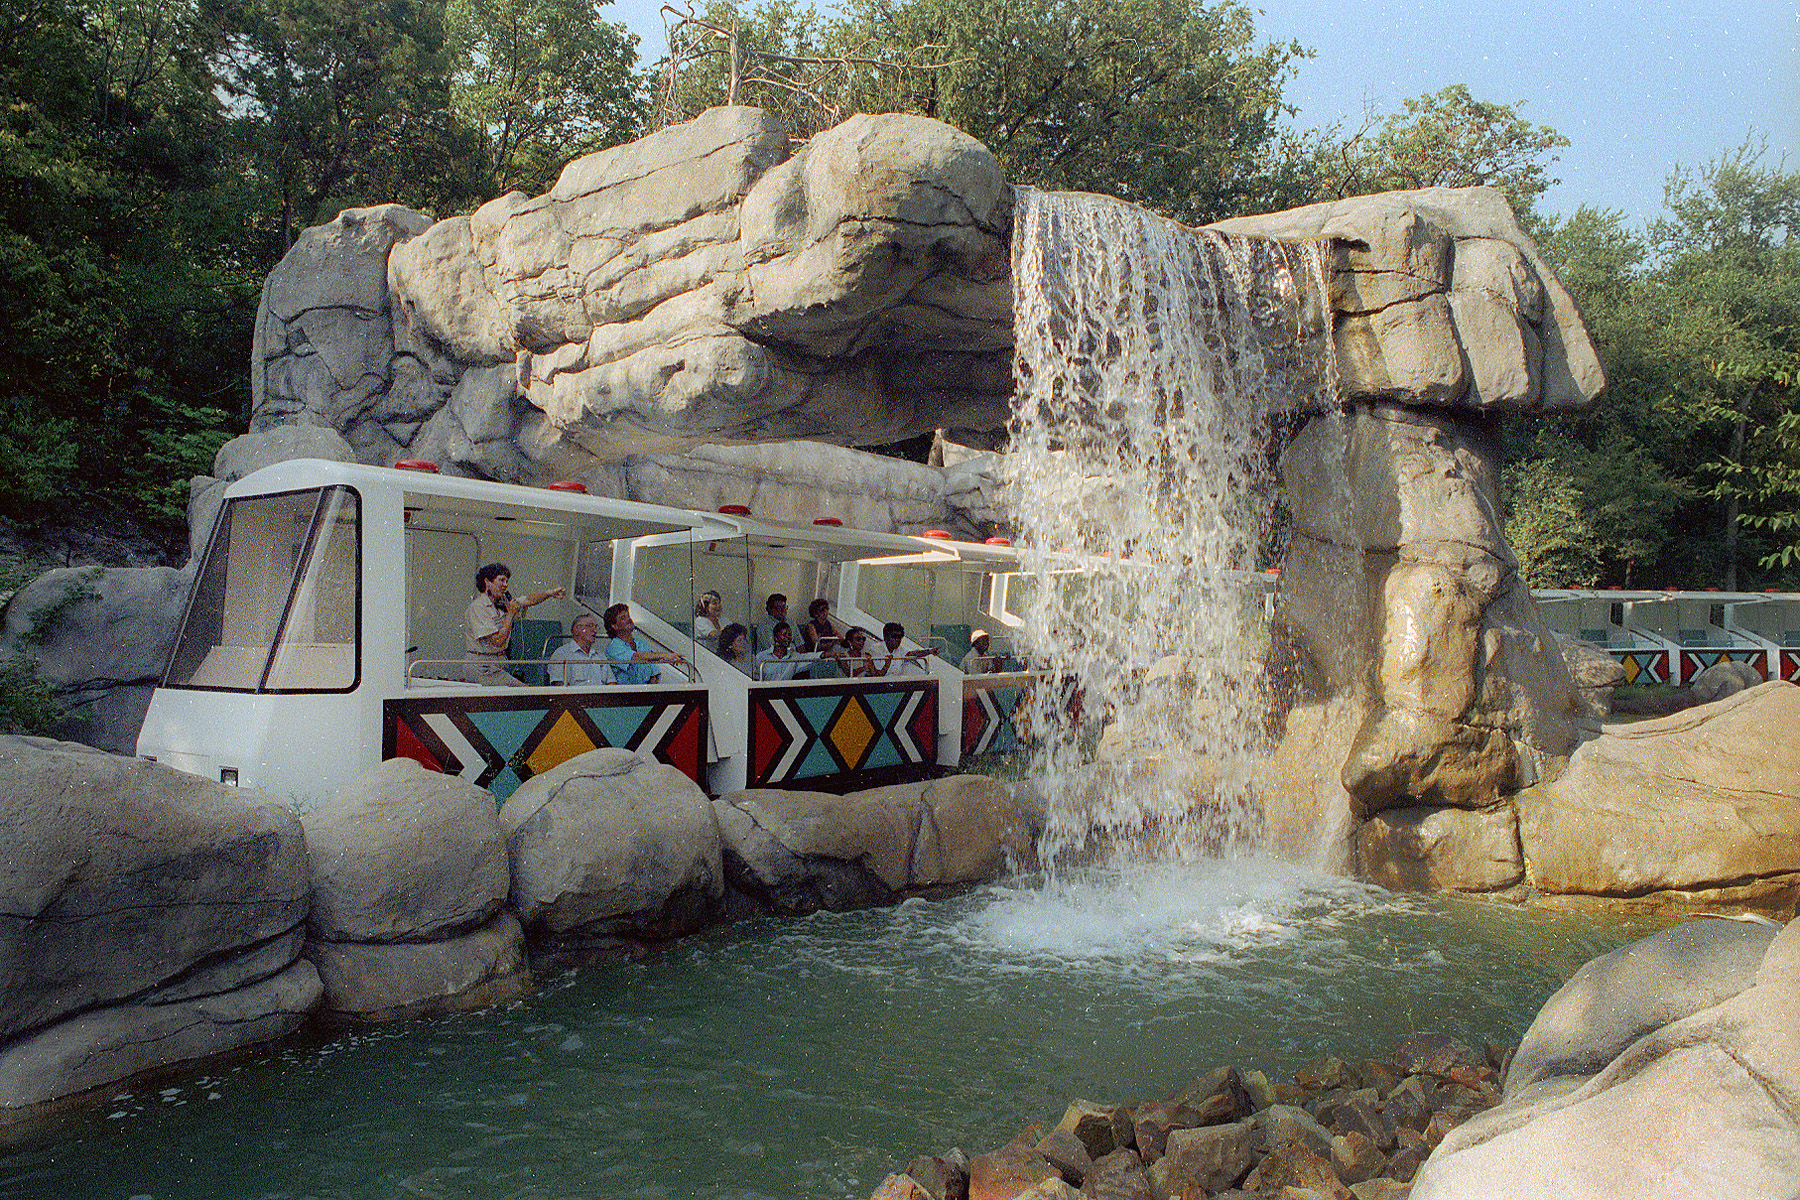 Monorail Safari Dallas Zoohoo